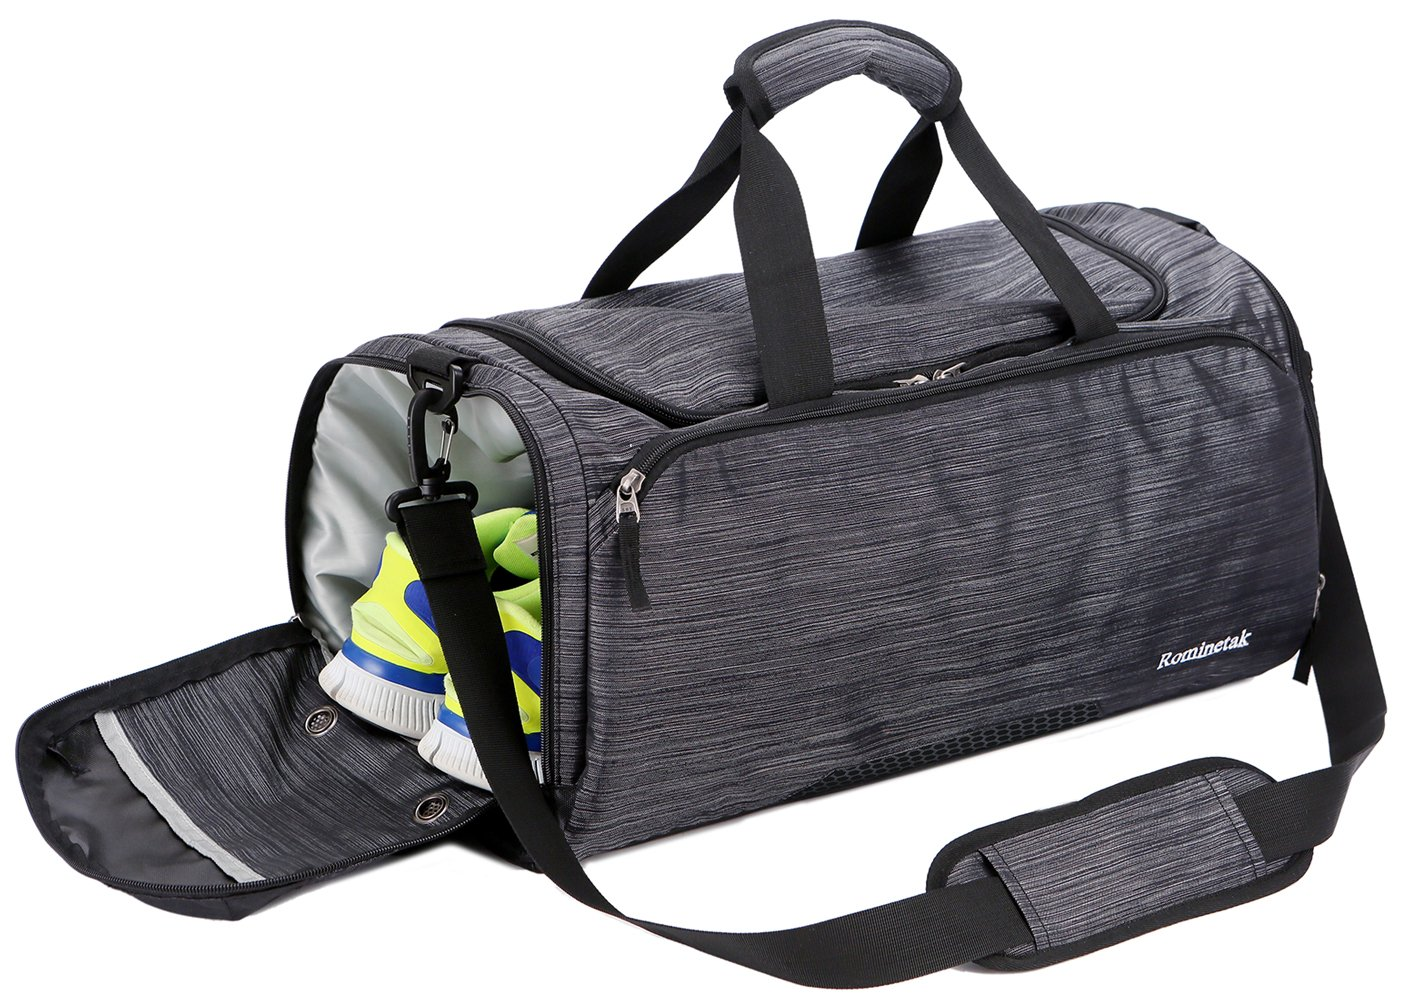 Rominetak Gym Bag Sports Travel Duffel Bag for Men and Women with Shoes  Compartment (One Size 58b7f0e7180eb